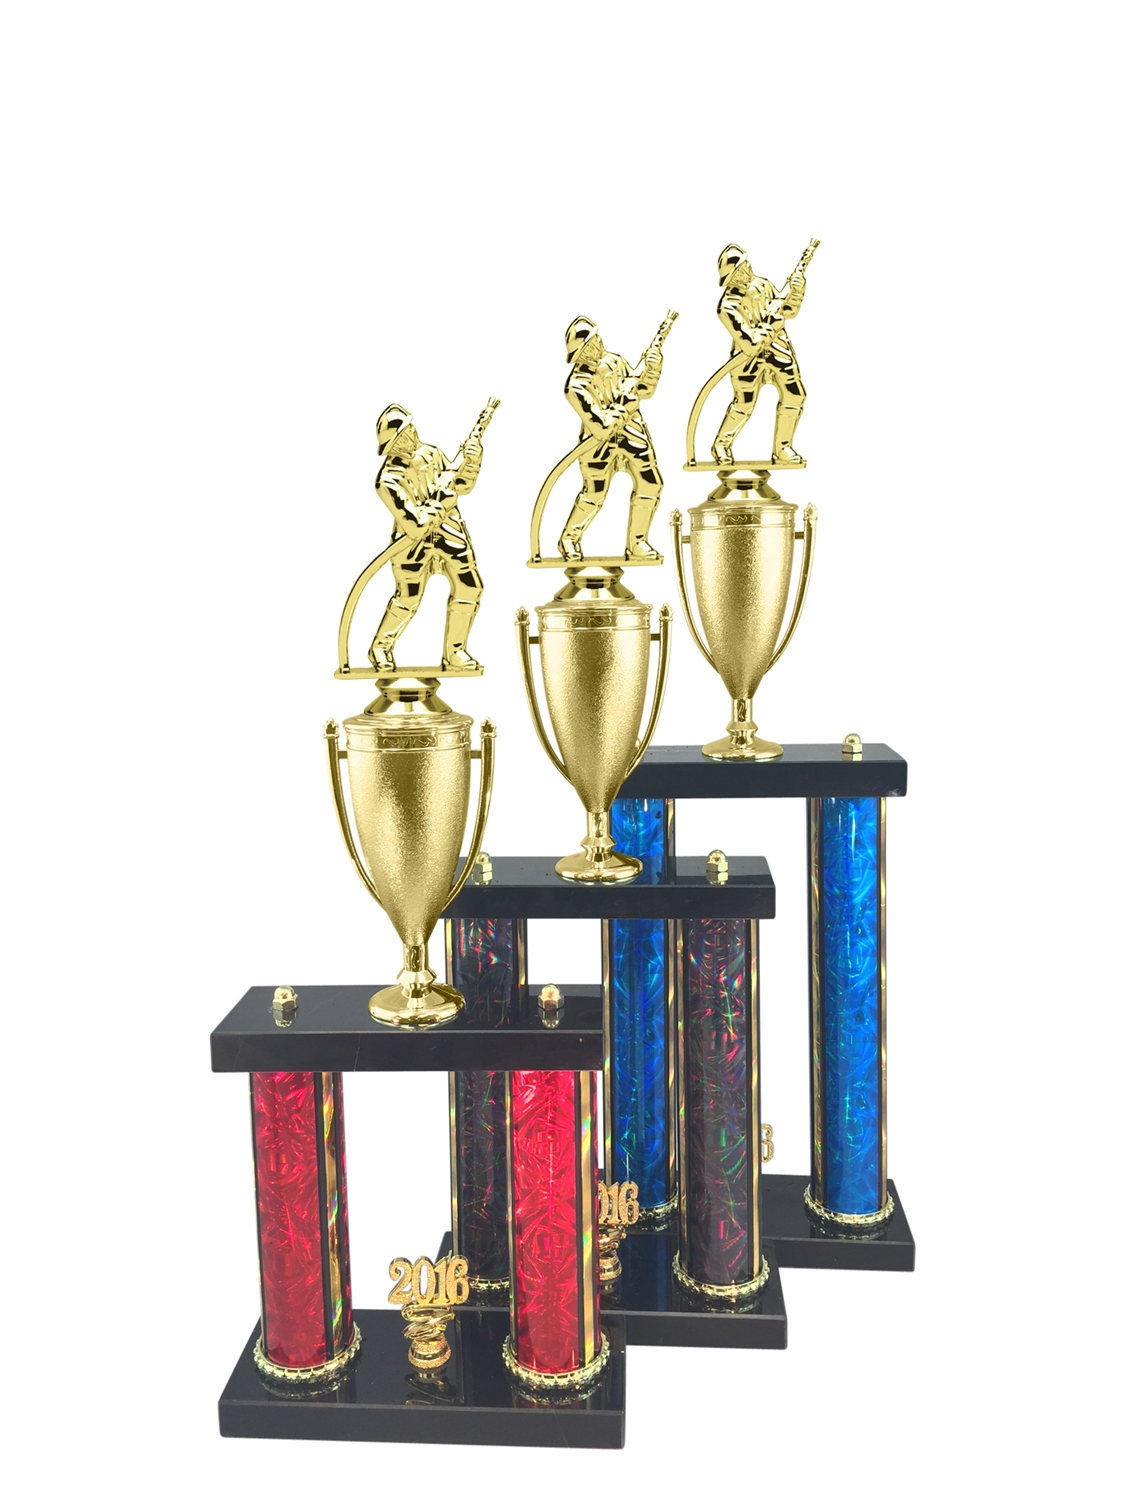 Firefighter Trophy Available in 11 Color & 3 Size Options